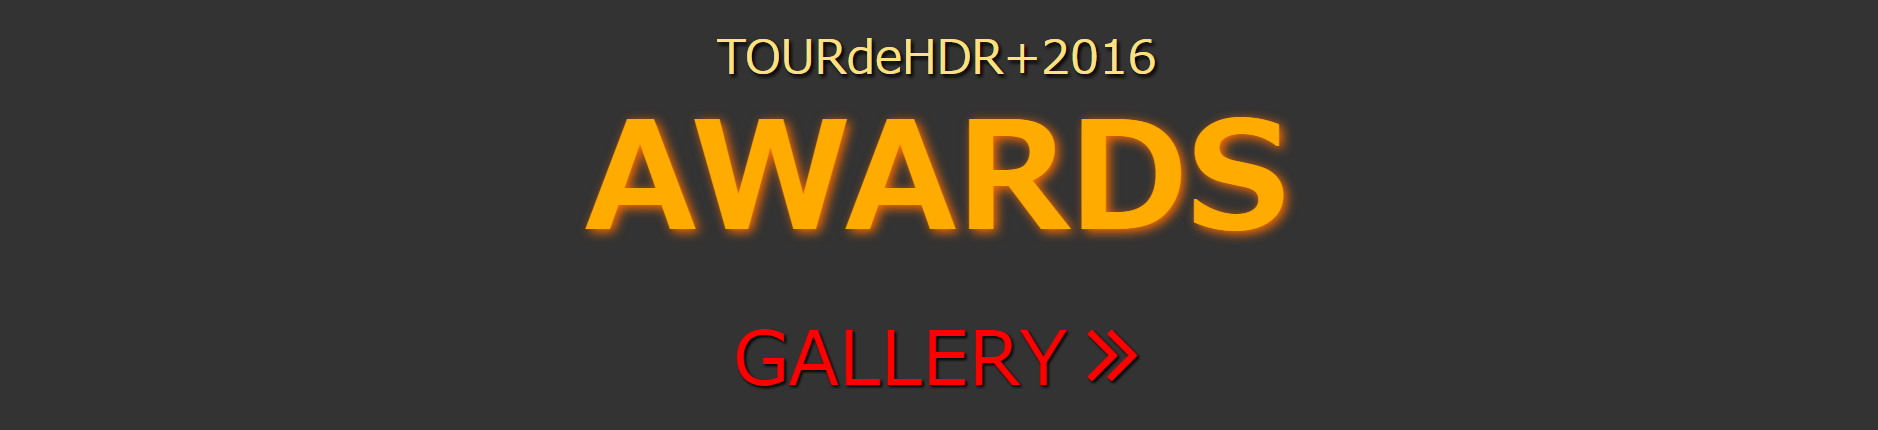 Awards2016 GALLERY